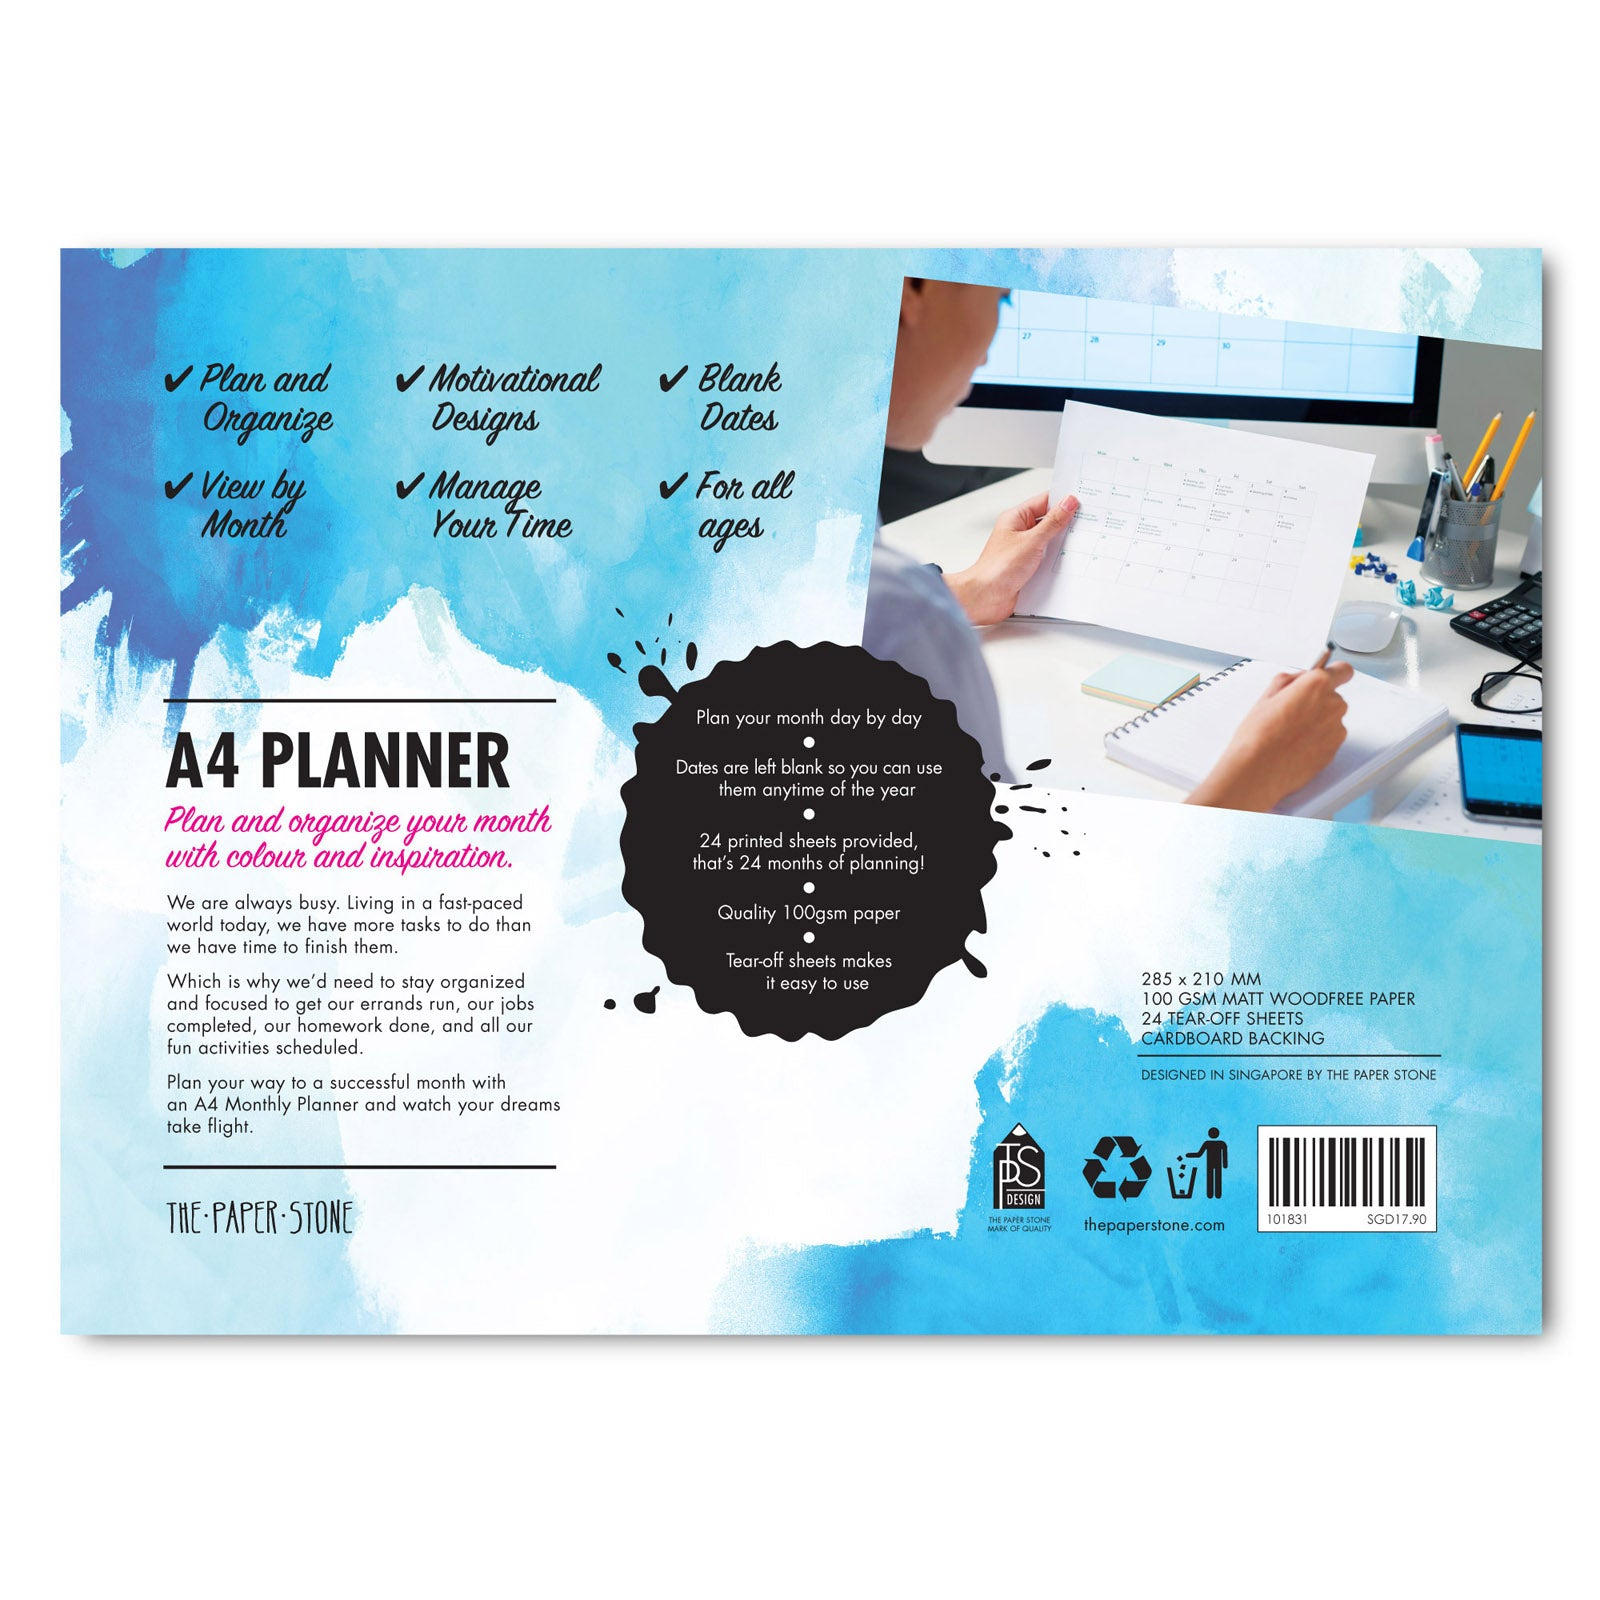 A4 Planner - Fabulous Everyday Raindrops